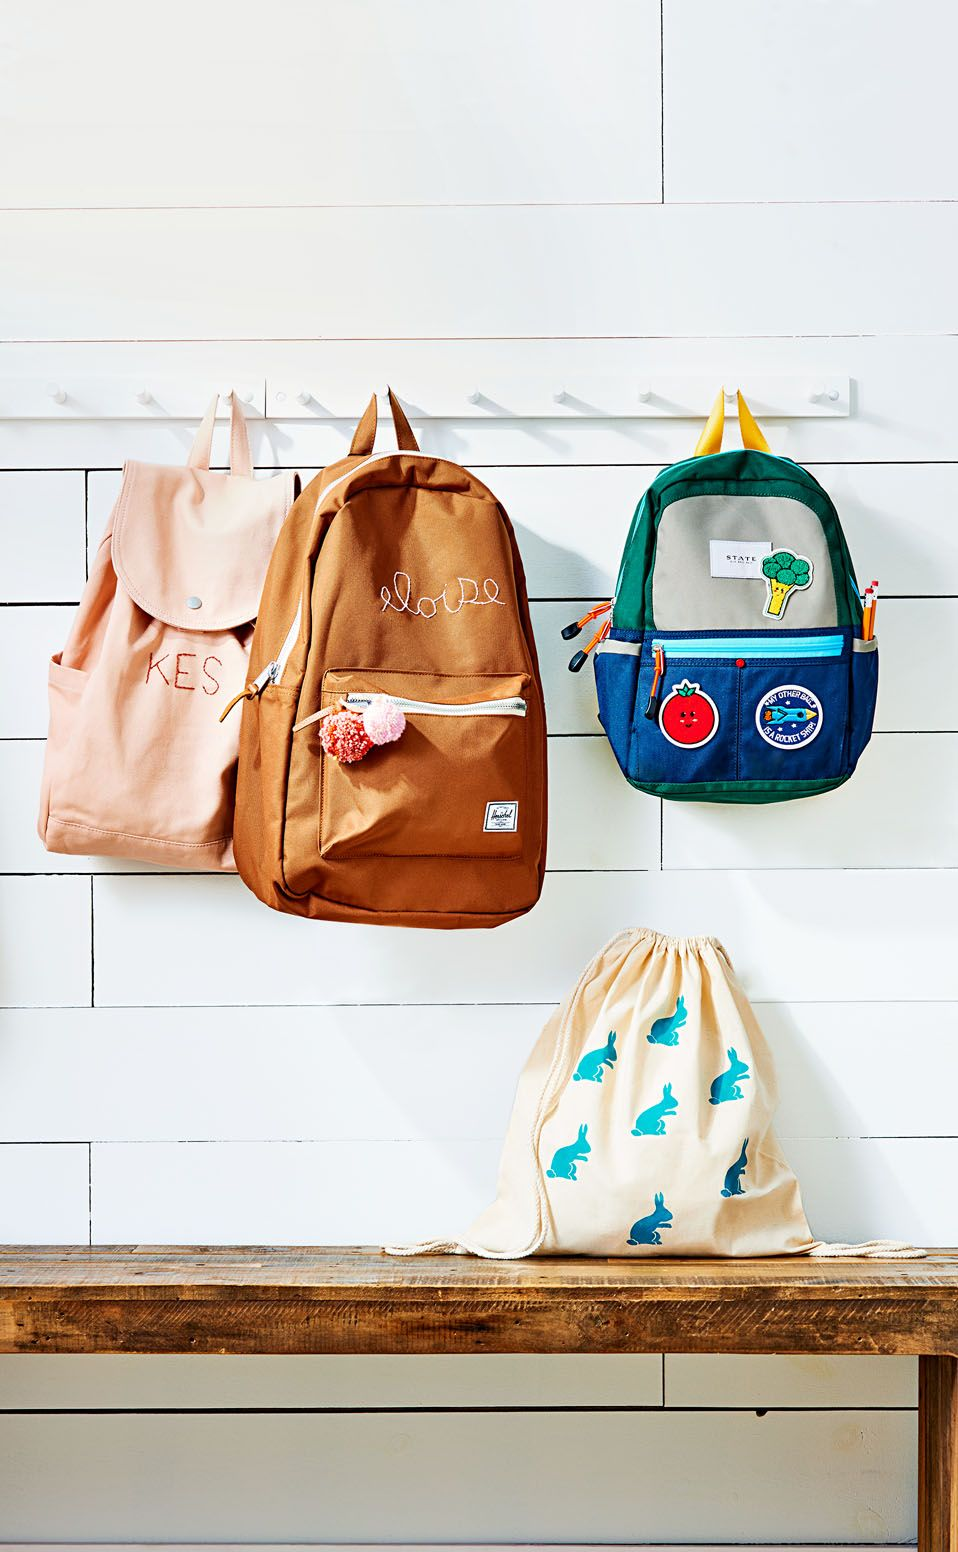 How To Clean A Backpack Backpacks Back To School Back To